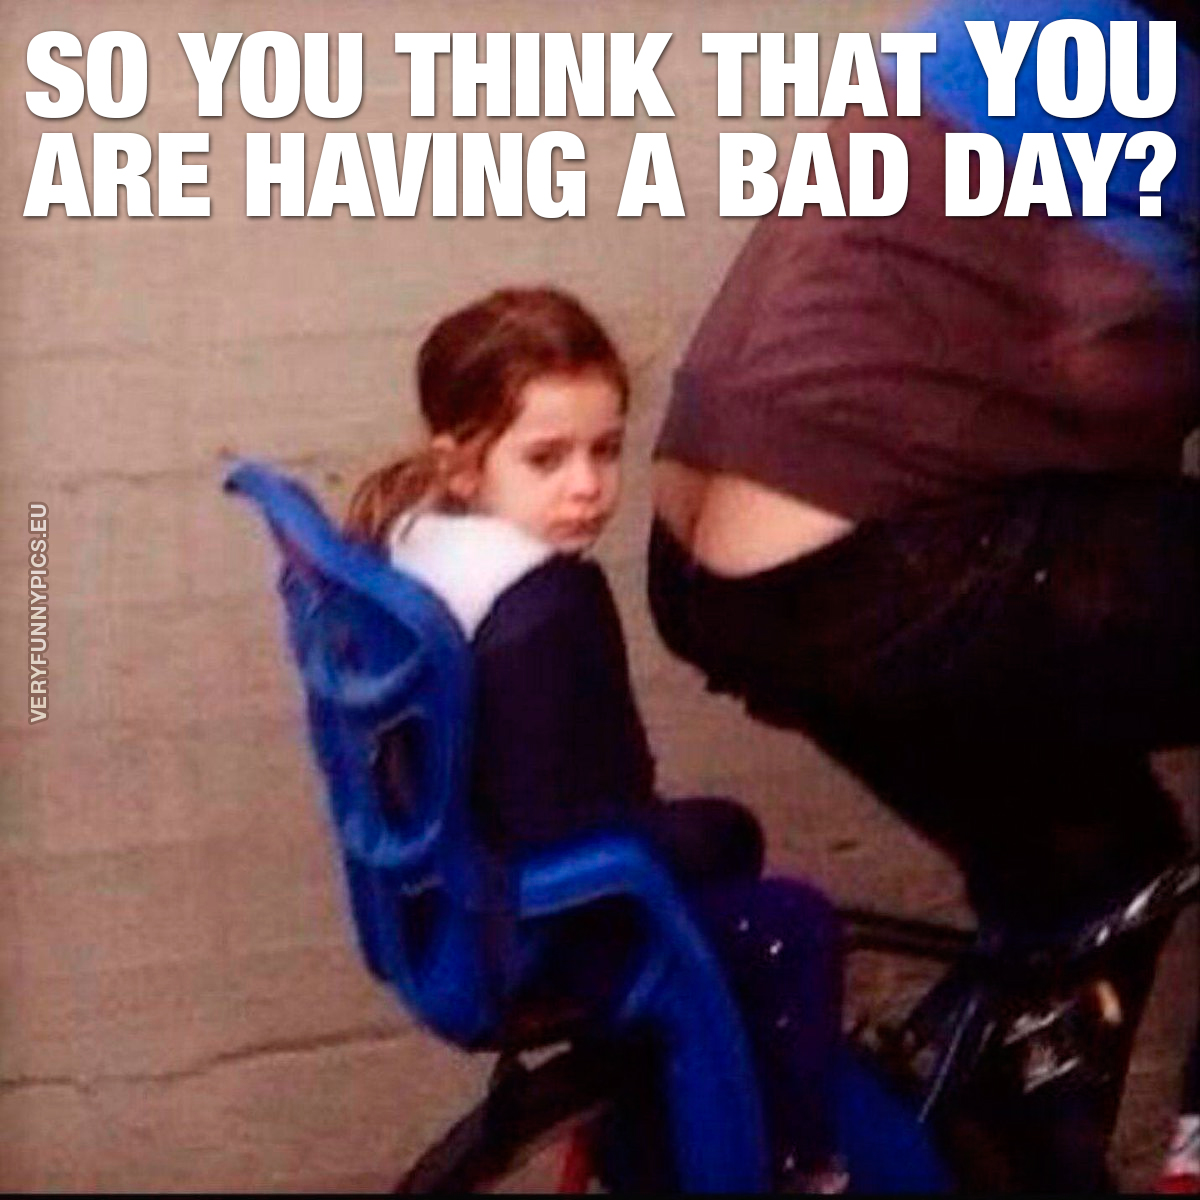 A girl is getting a ride on a bicycle